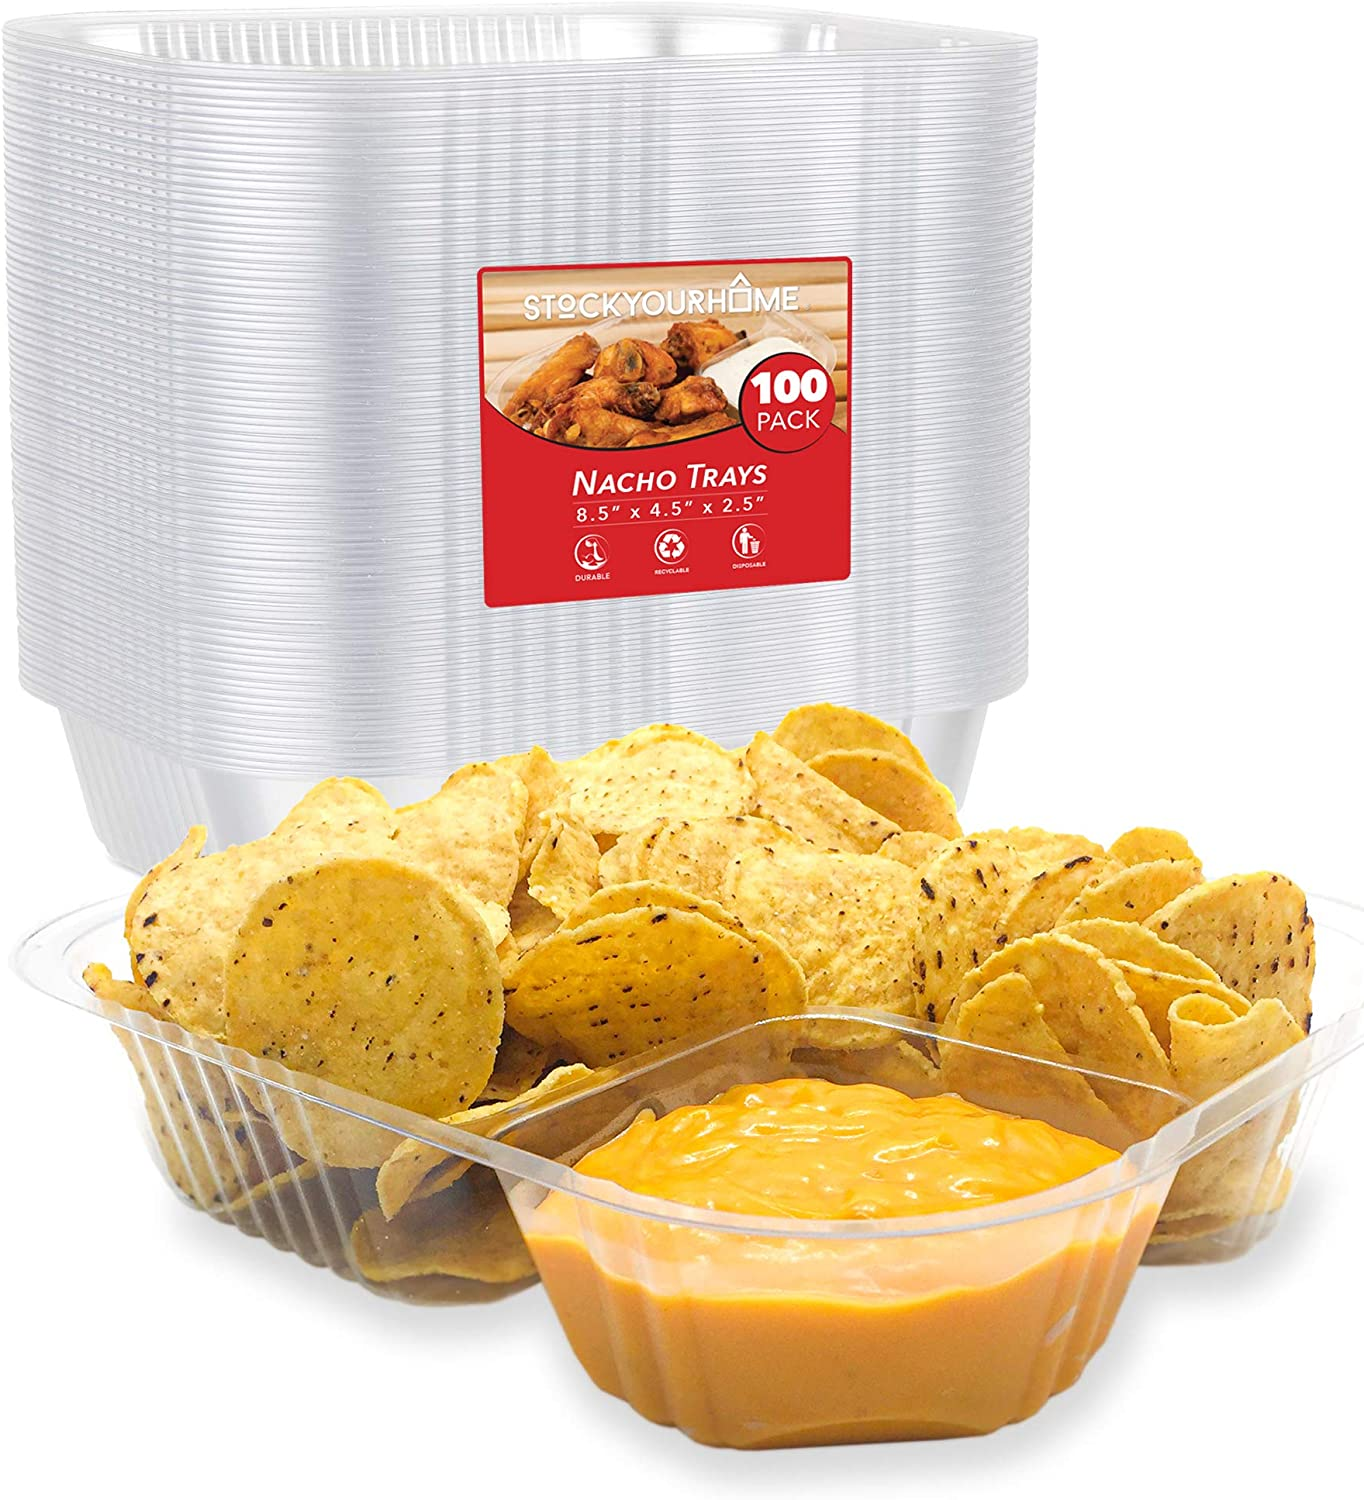 Nacho Trays (100 Pack) Disposable 2 Compartment Food Tray - 8 x 6 Nacho Tray - Clear Plastic Chip and Dip Holder for Movie Theater Concession Stand, Carnivals, Fairs, Festivals, Kids Parties, 22 Ounce